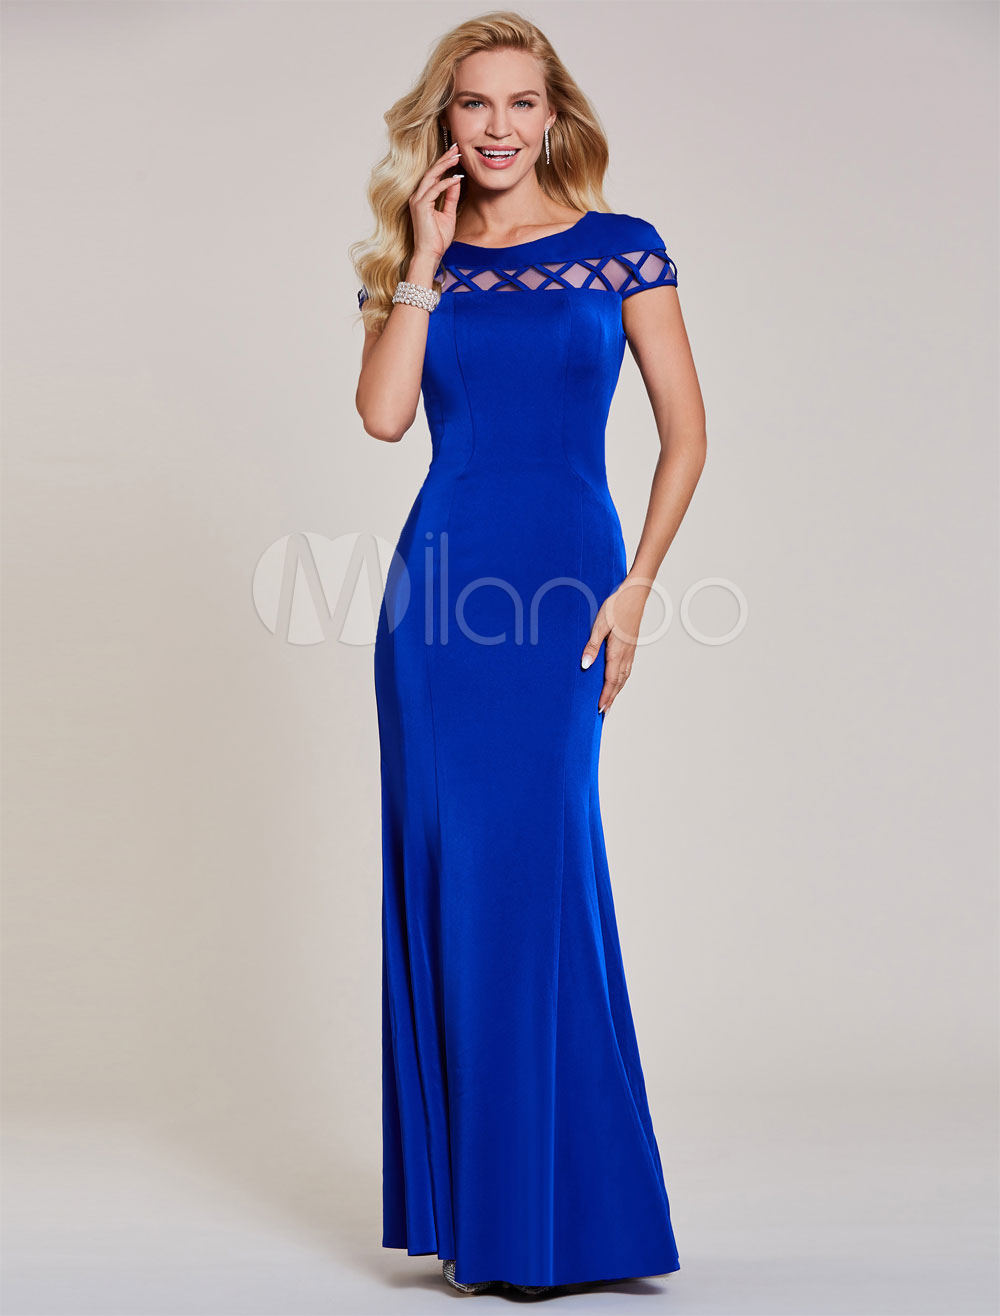 Evening Dresses Royal Blue Mermaid Formal Dress Short Sleeve Illusion Wedding Guest Dress